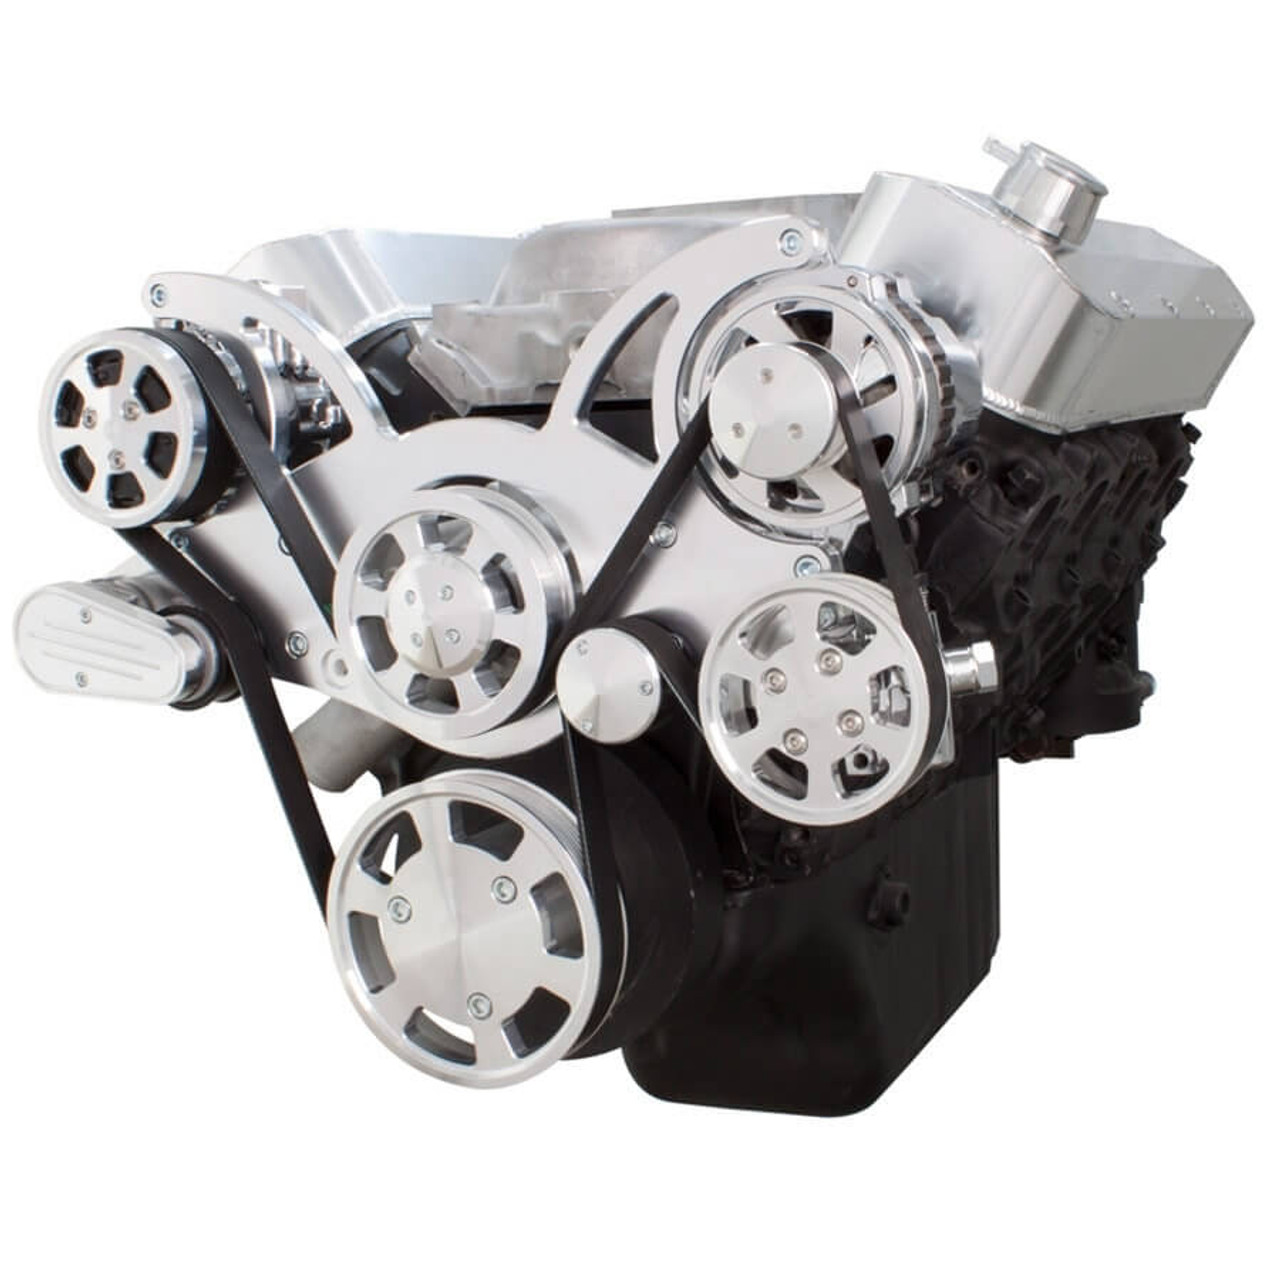 Serpentine System for Big Block Chevy - AC, Power Steering & Alternator -  All Inclusive